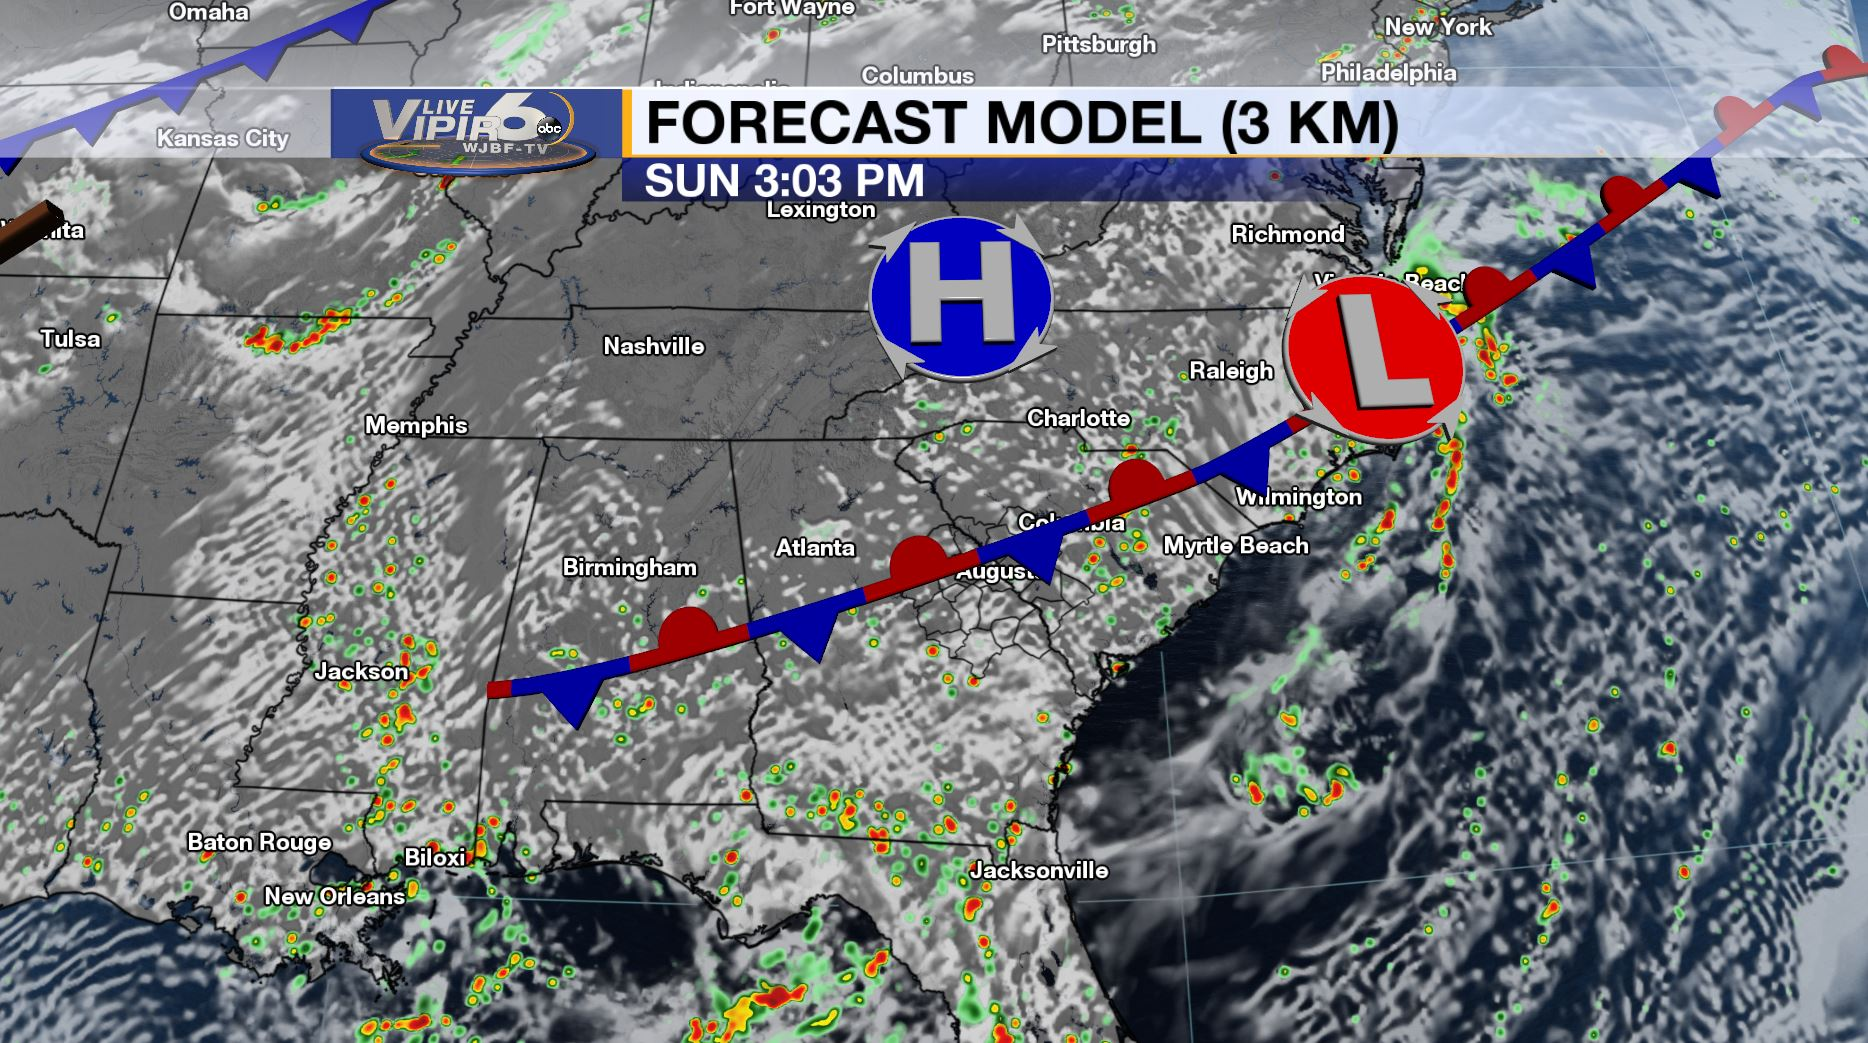 Live VIPIR 6 Weather Forecast 8/17/19 PM | WJBF